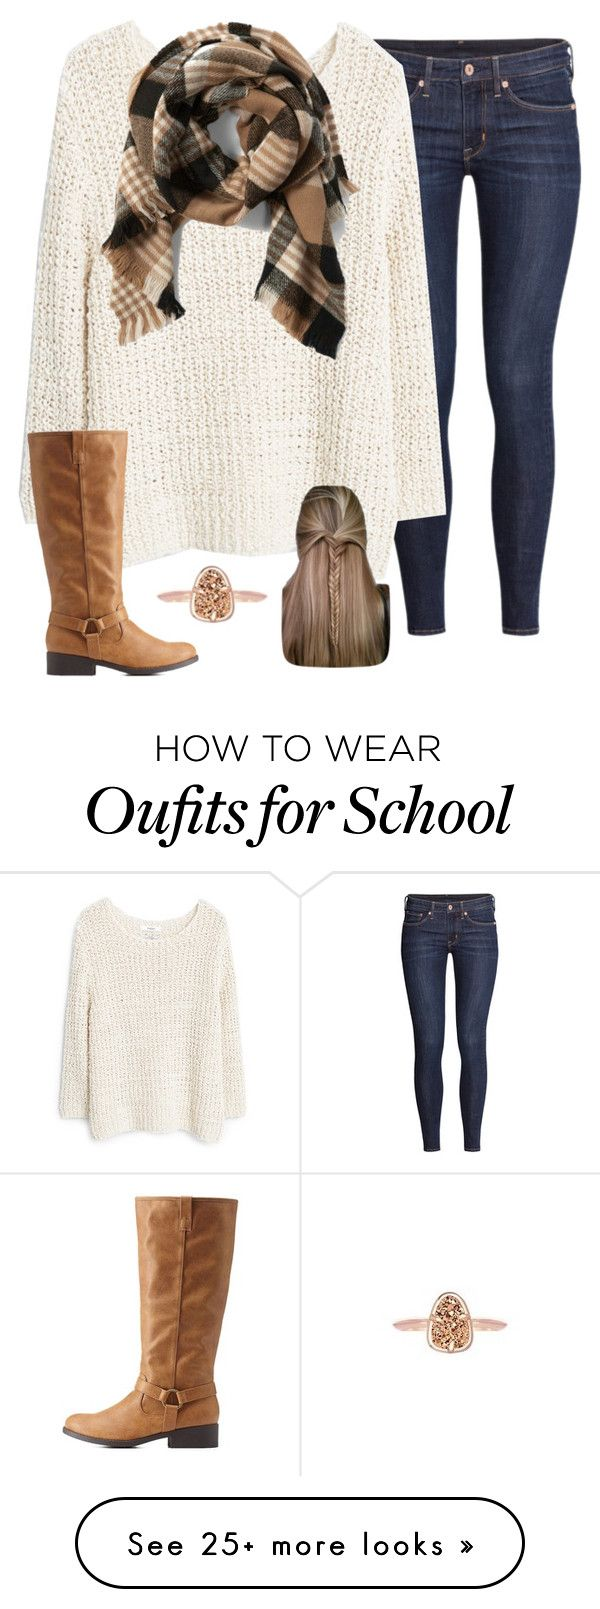 """""""I'm about done with school."""" by madelynprice on Polyvore featuring H&M, MANGO, Charlotte Russe, Abercrombie & Fitch and Kendra Scott"""